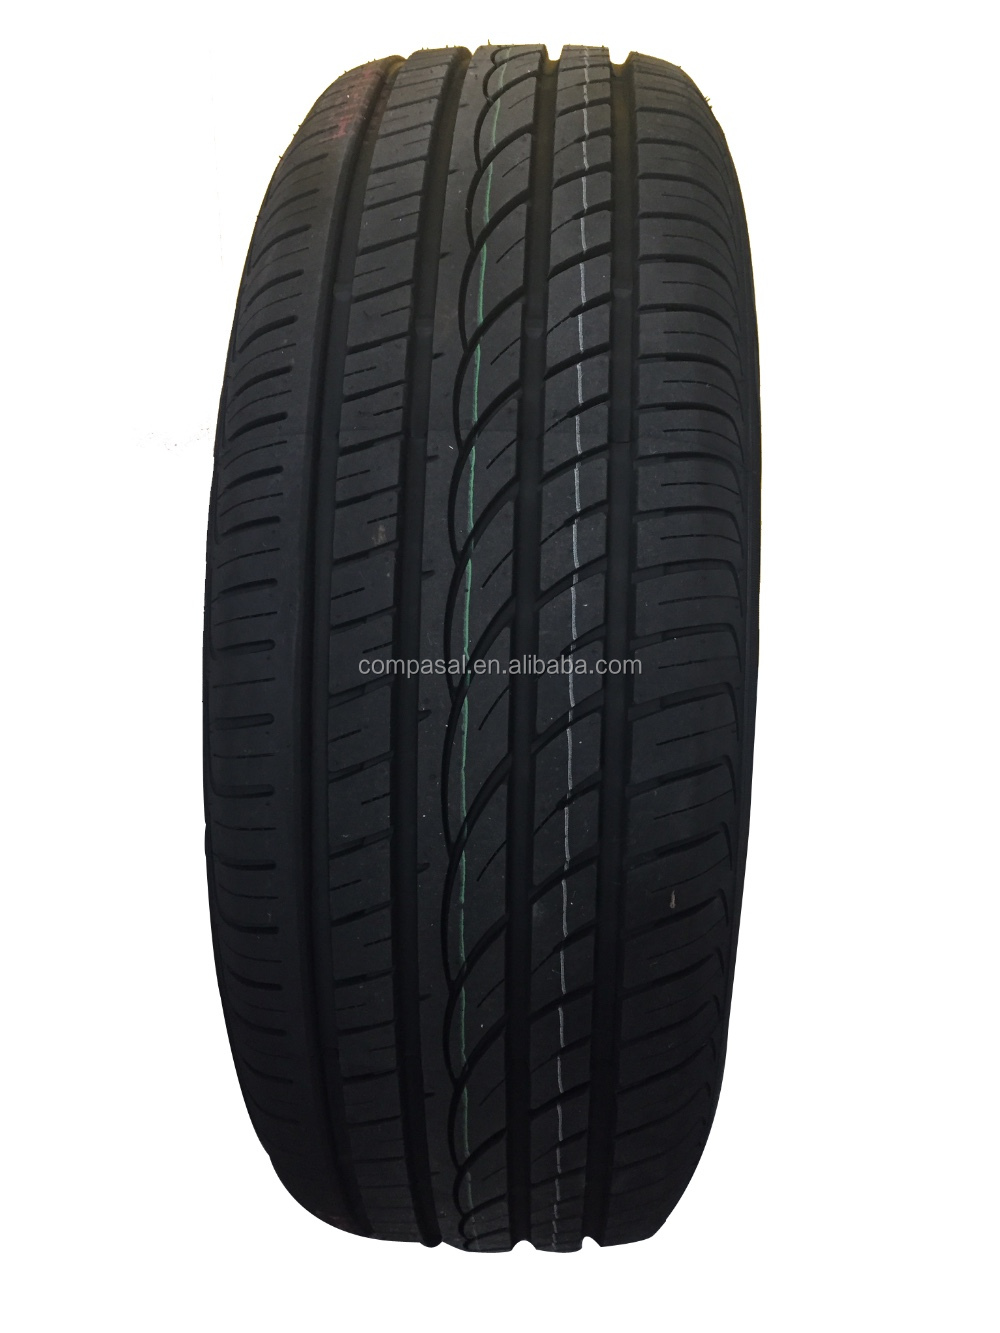 305/35R24 305 35 24 305X35X24 UHP series SUV car tire china new car tire manufacturer wholesale